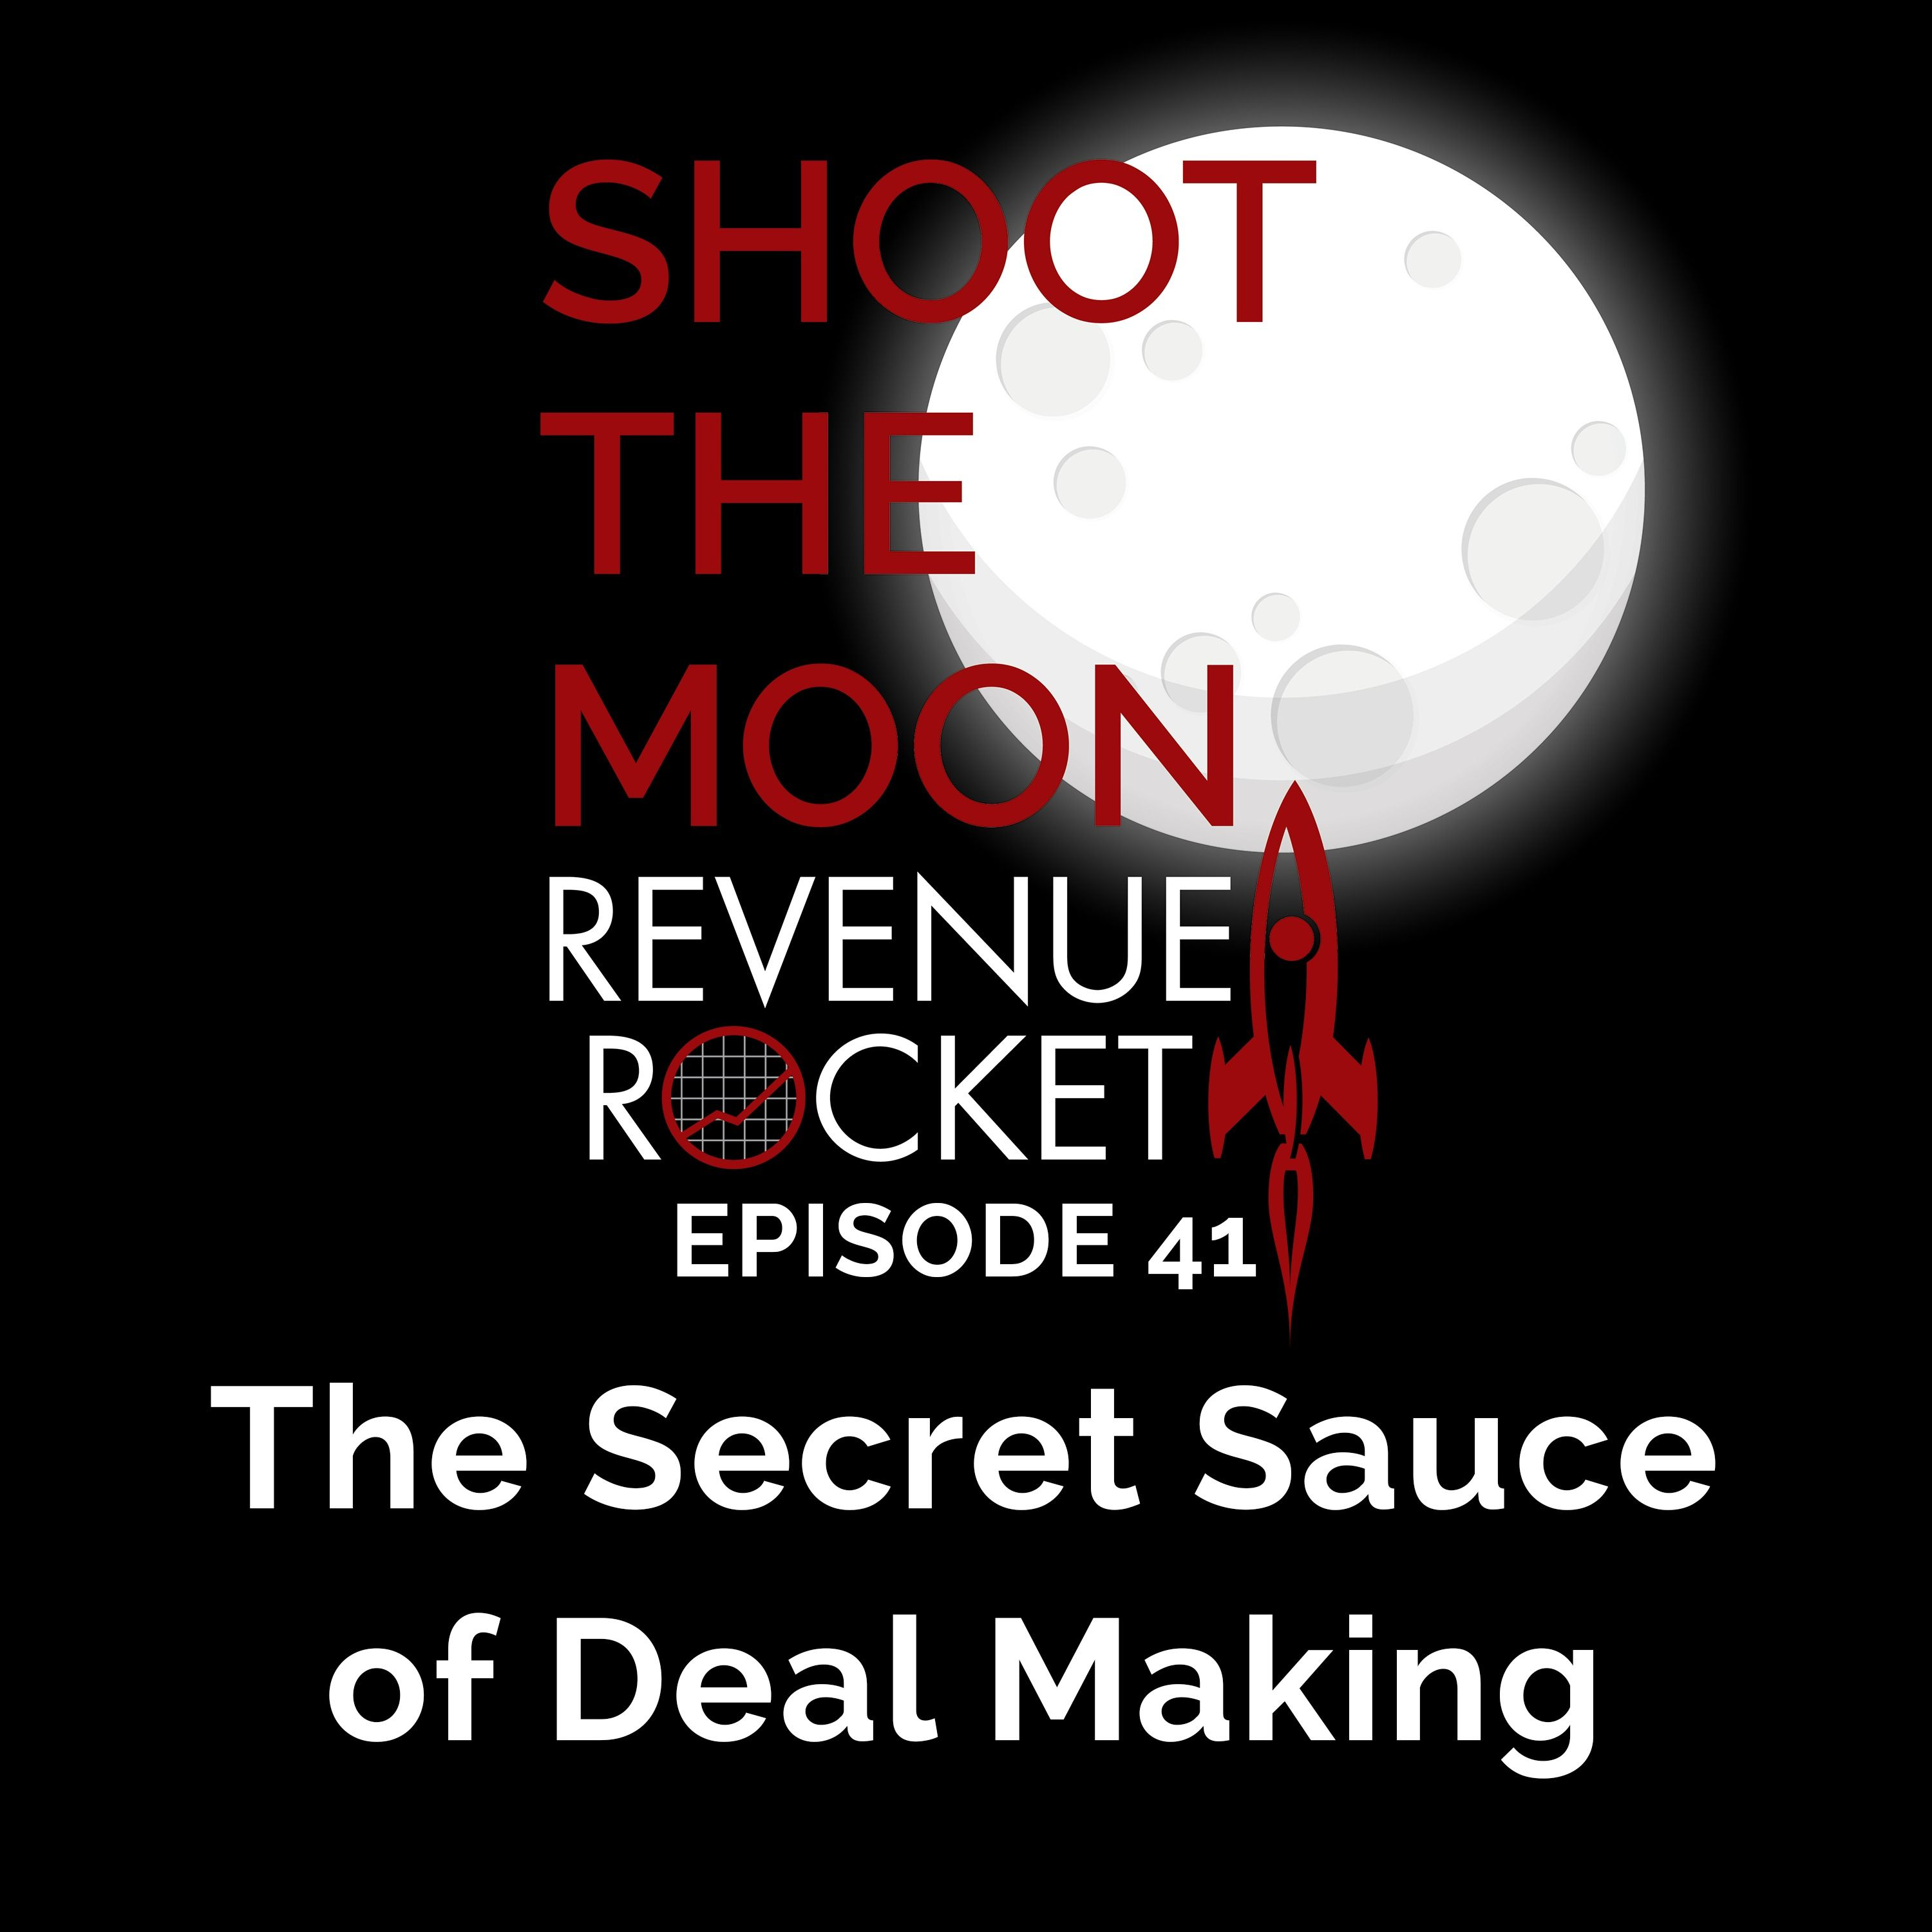 The Secret Sauce of Deal Making